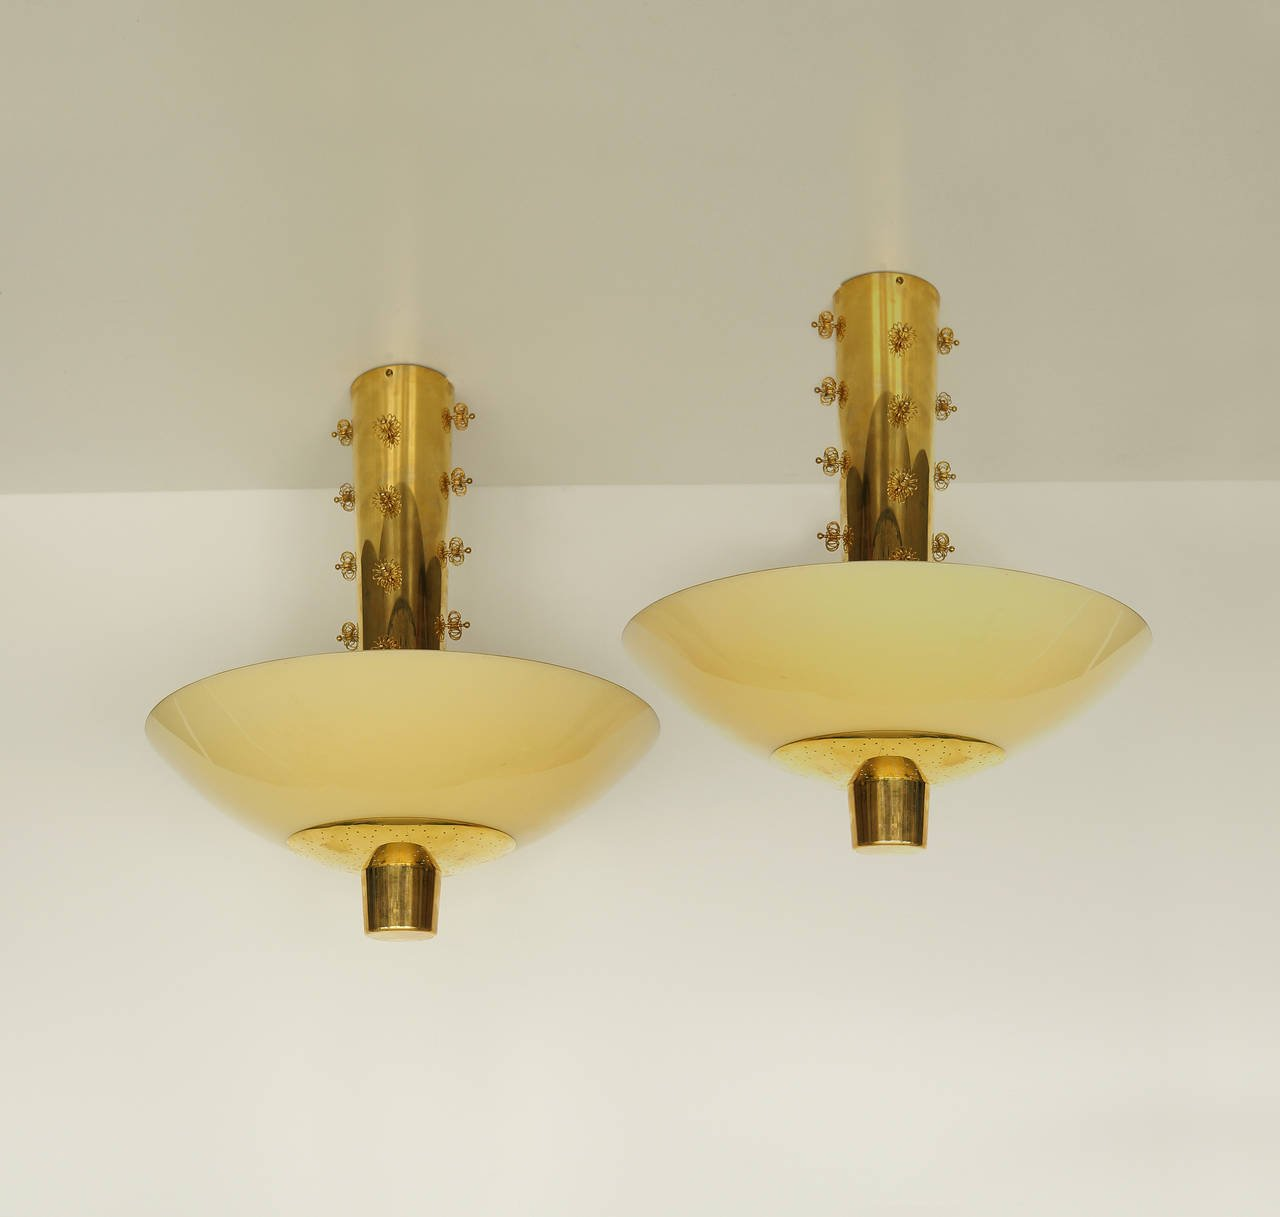 Paavo Tynell Pair of Custom Ceiling Lights for Taito Oy, 1940s - The Exchange Int